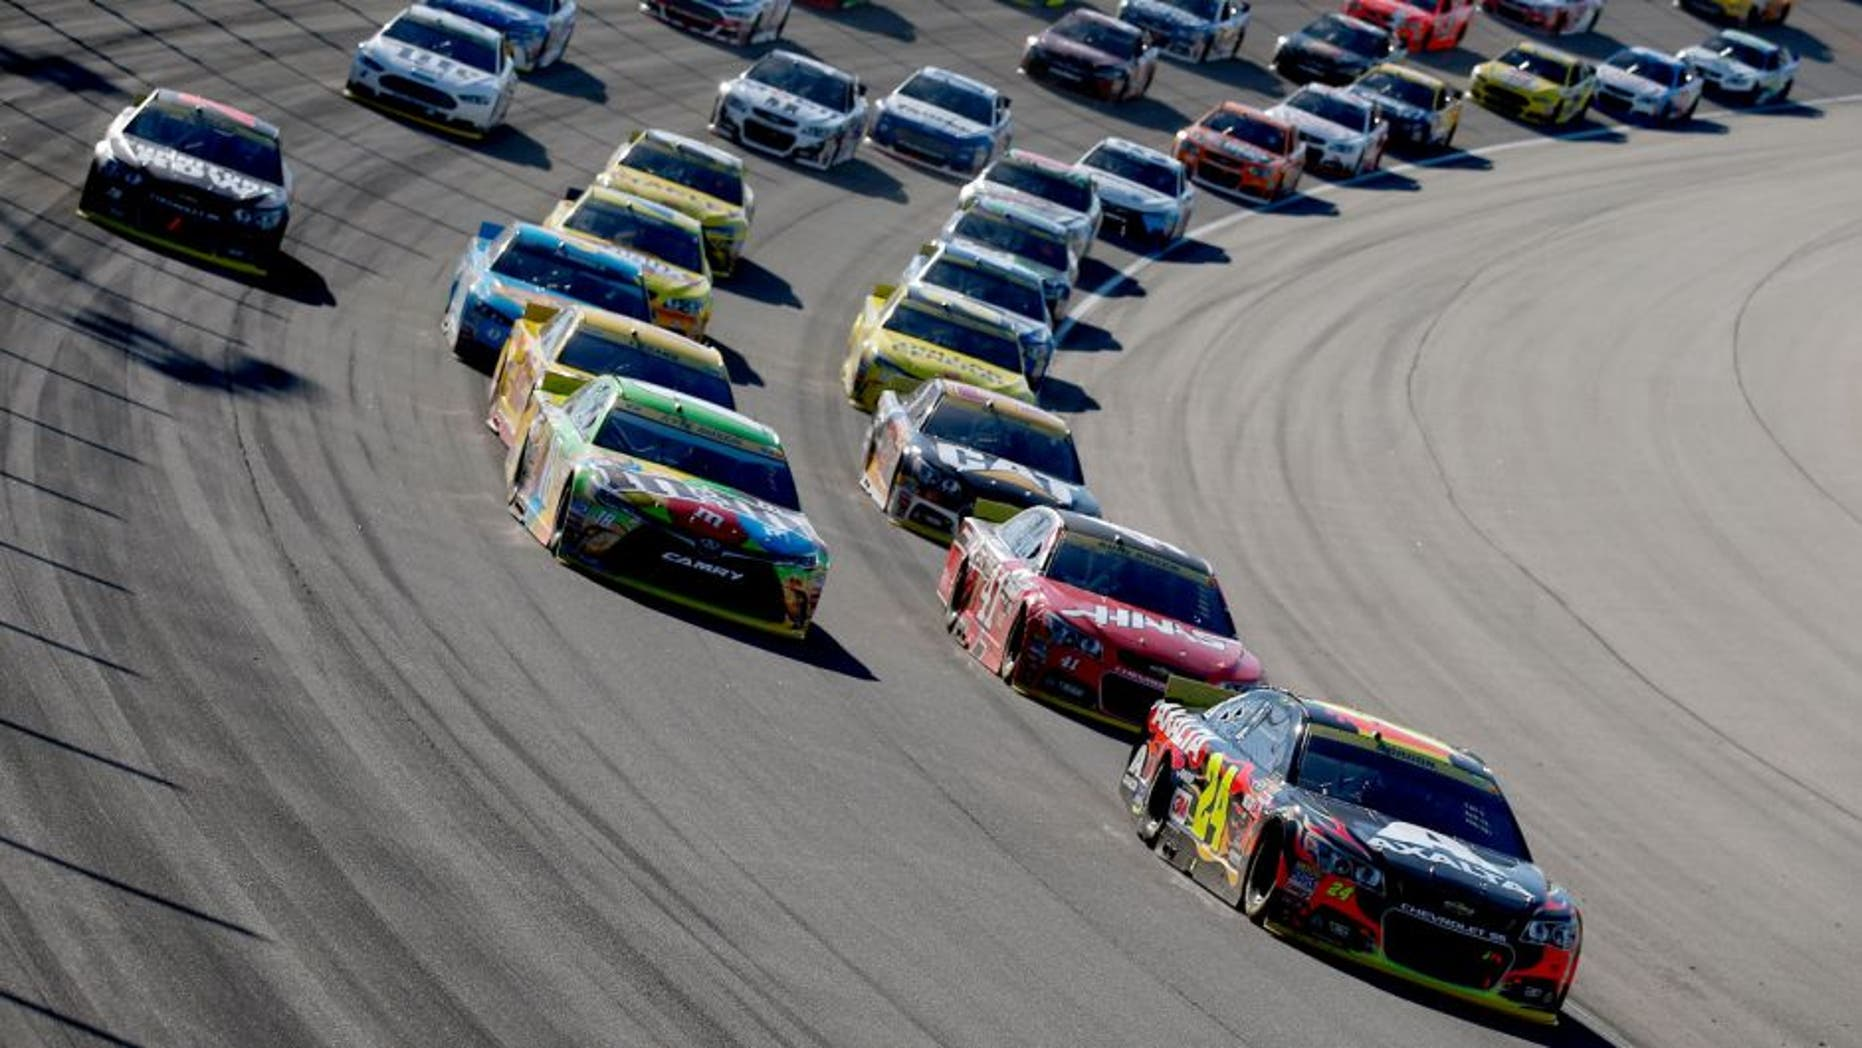 JOLIET, IL - SEPTEMBER 20: Jeff Gordon, driver of the #24 AXALTA Chevrolet, leads a pack of cars during the NASCAR Sprint Cup Series myAFibRisk.com 400 at Chicagoland Speedway on September 20, 2015 in Joliet, Illinois. (Photo by Todd Warshaw/NASCAR via Getty Images)